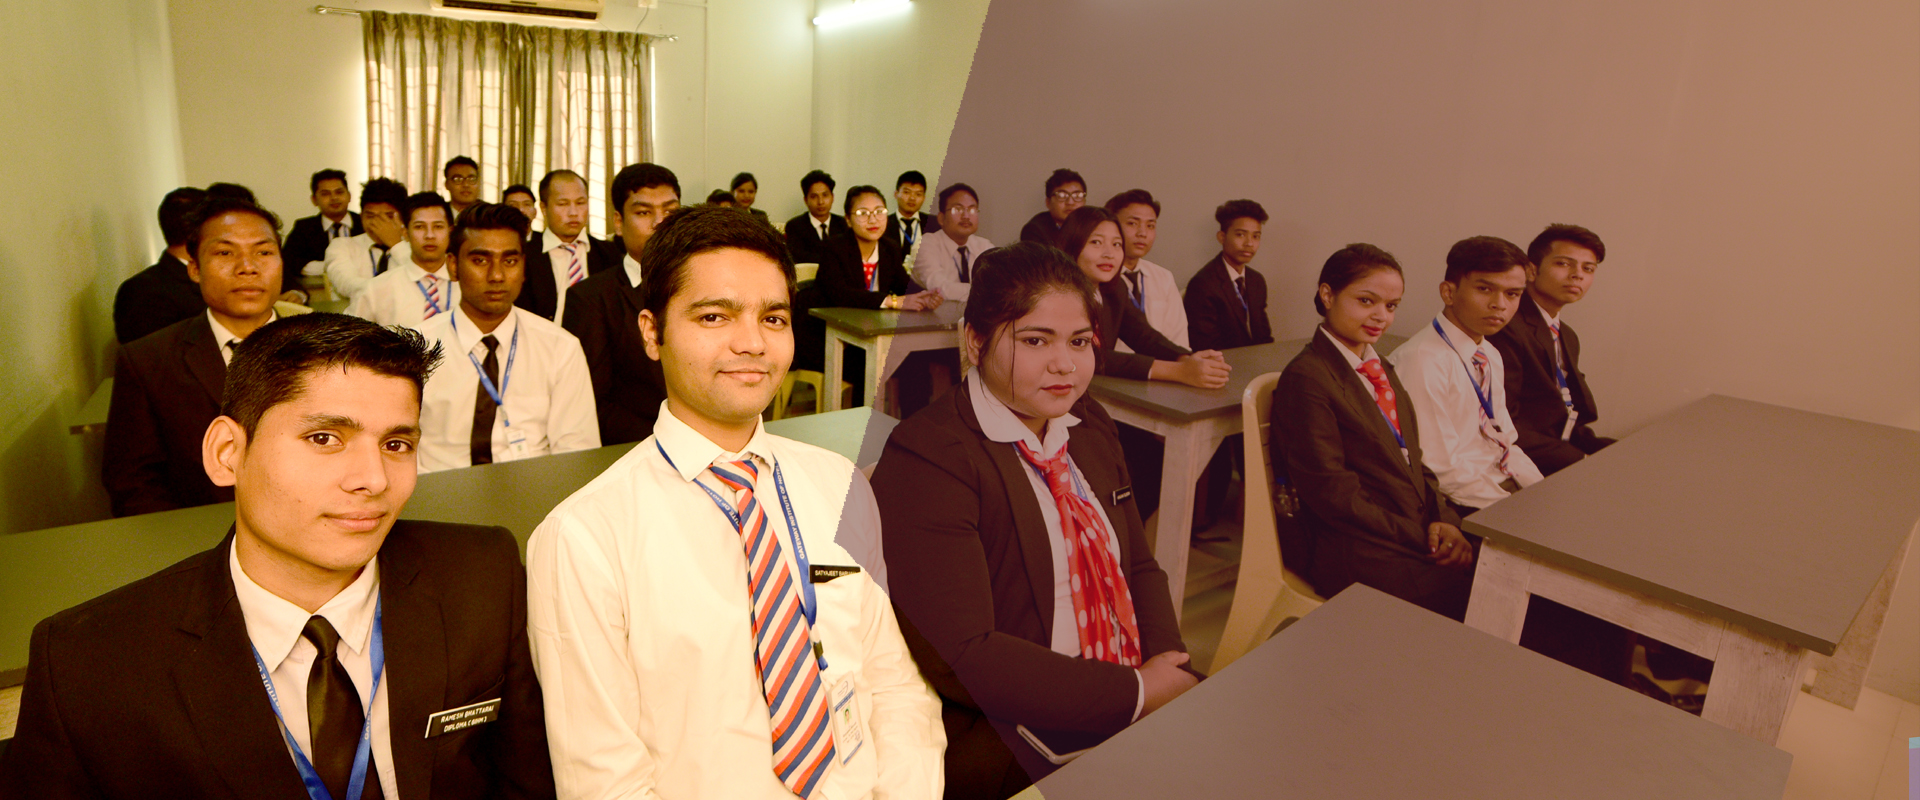 Hotel management institute in guwahati